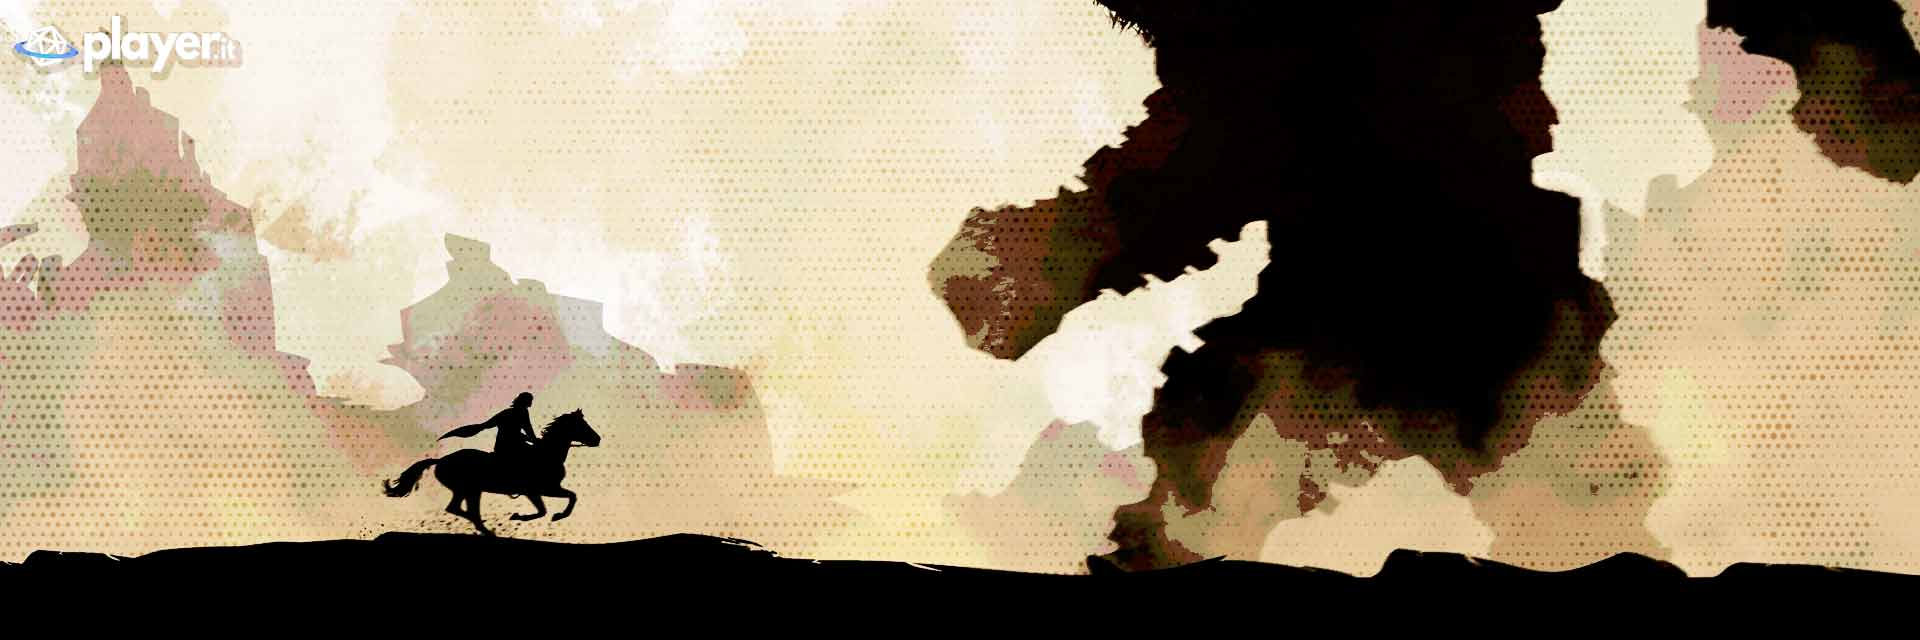 Shadow of the Colossus wallpaper in hd